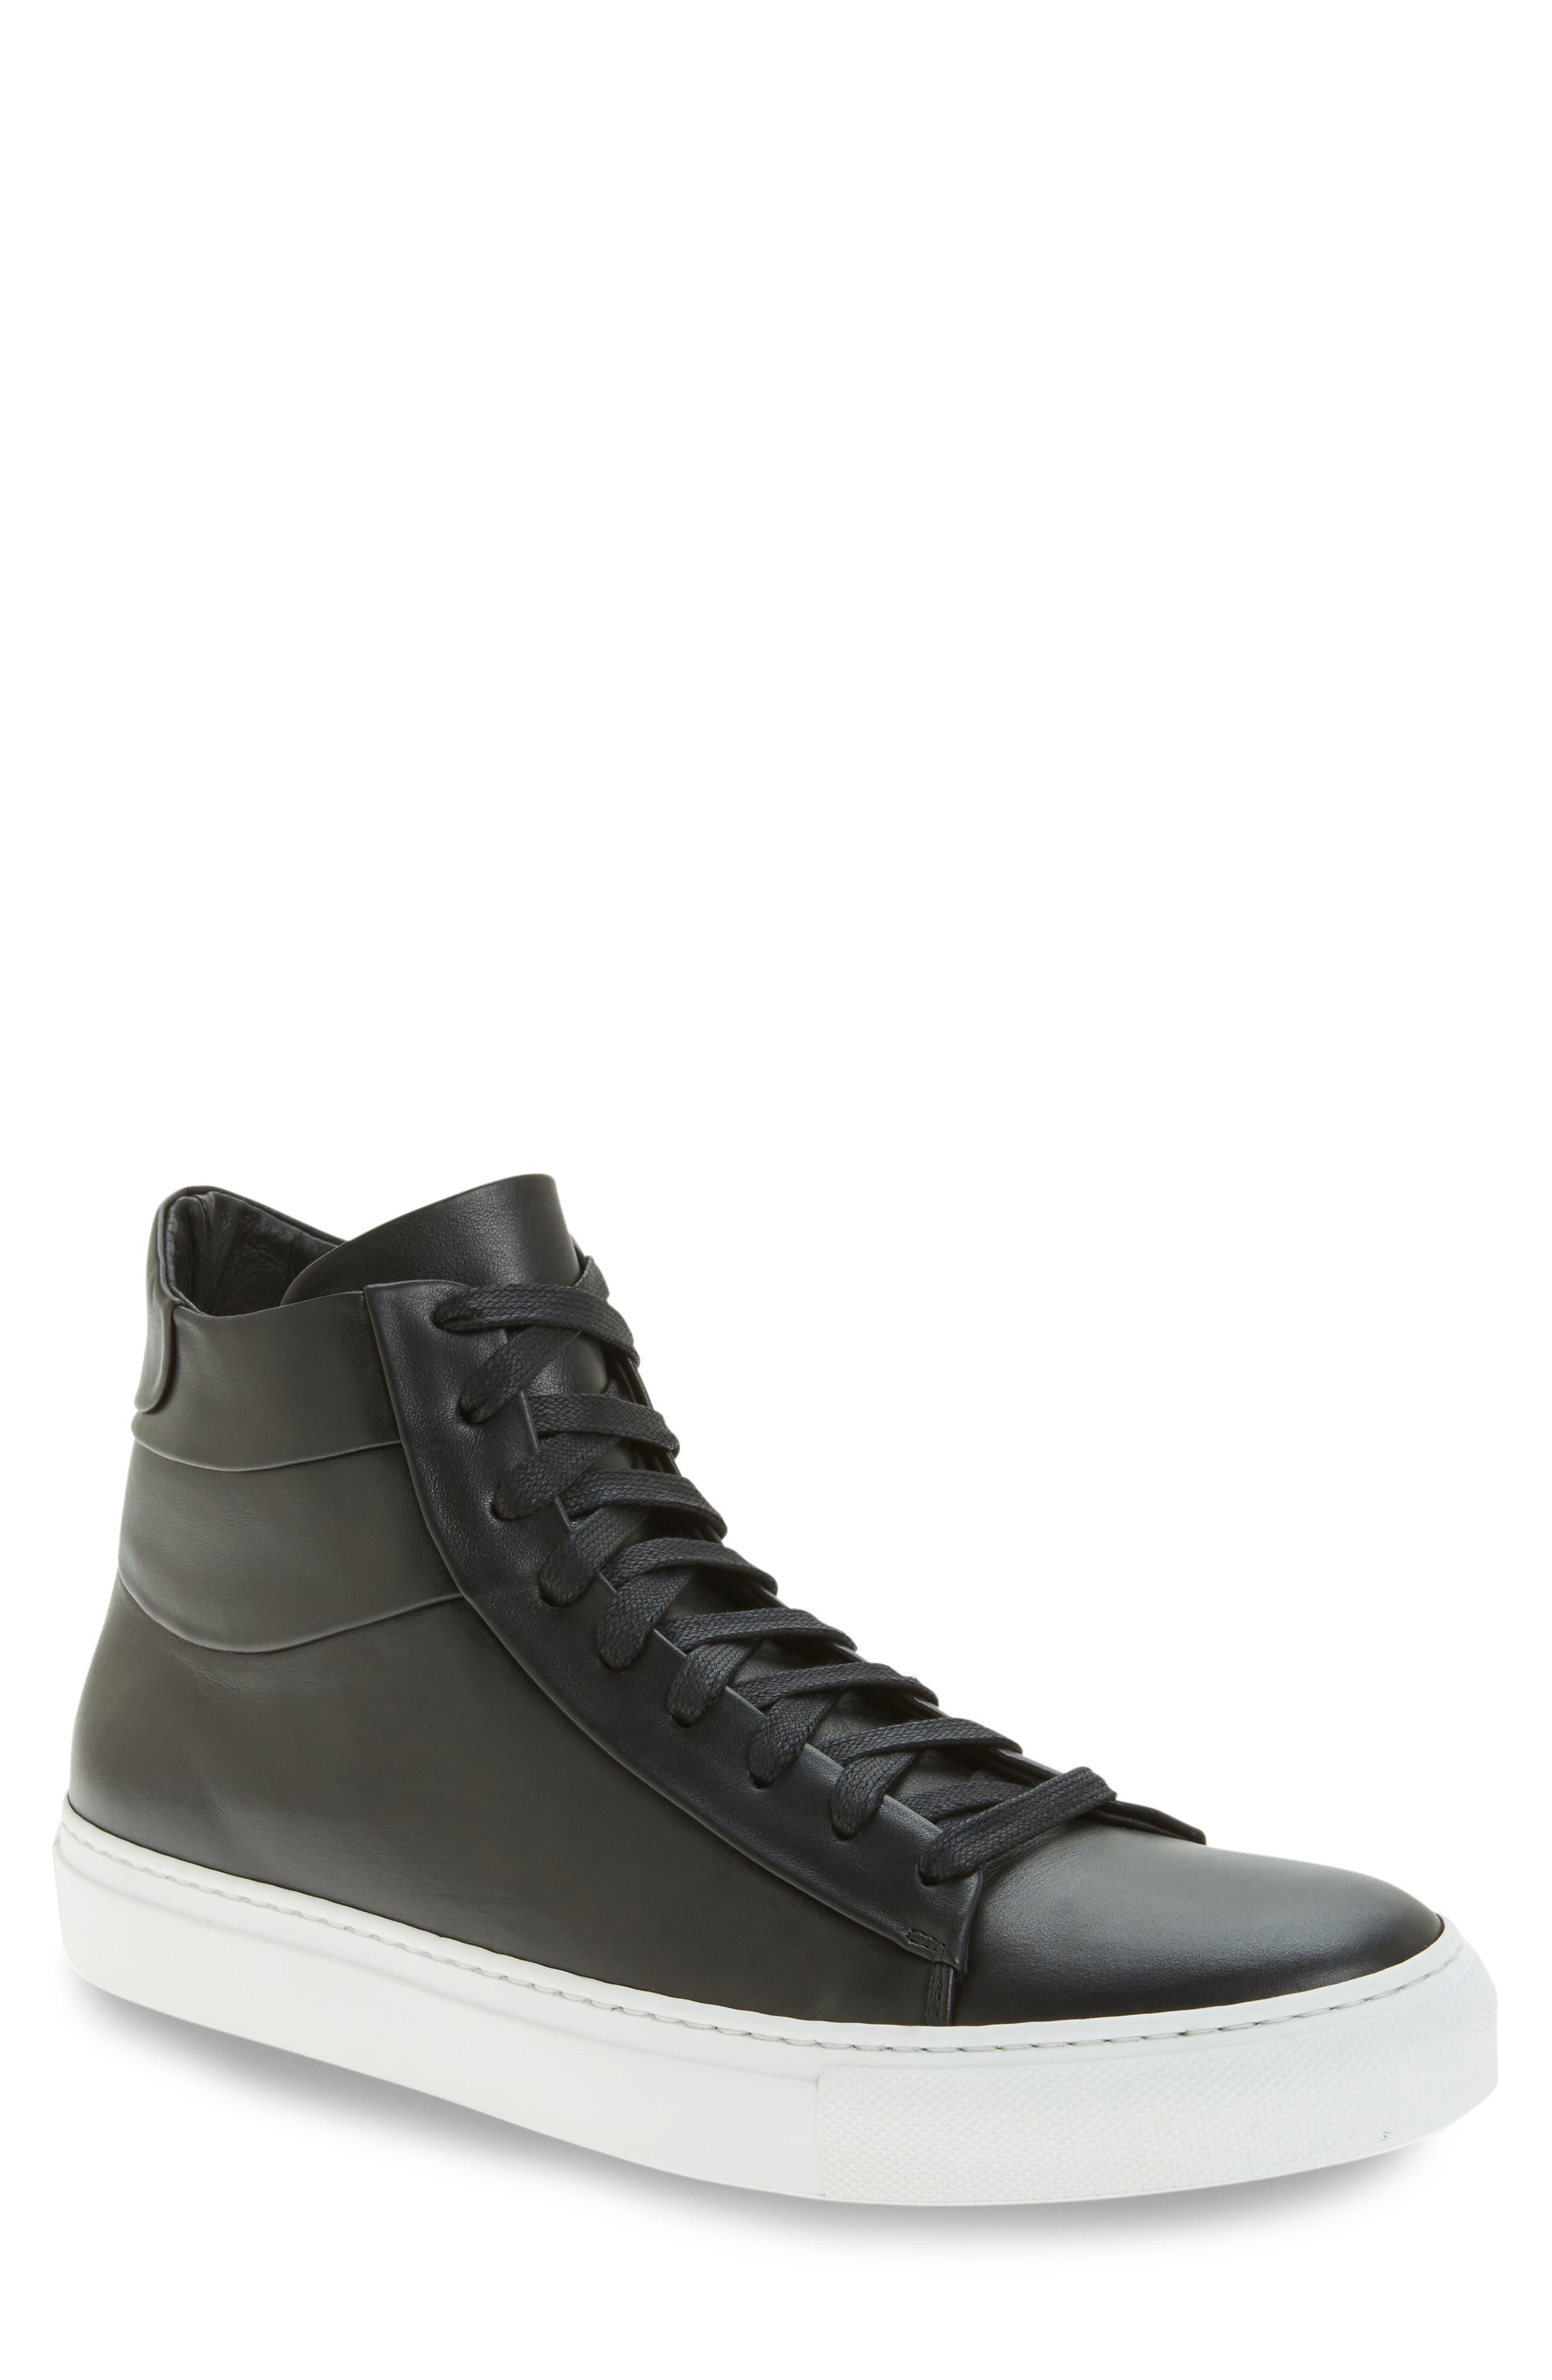 wings + horns Court Sneaker (Men)